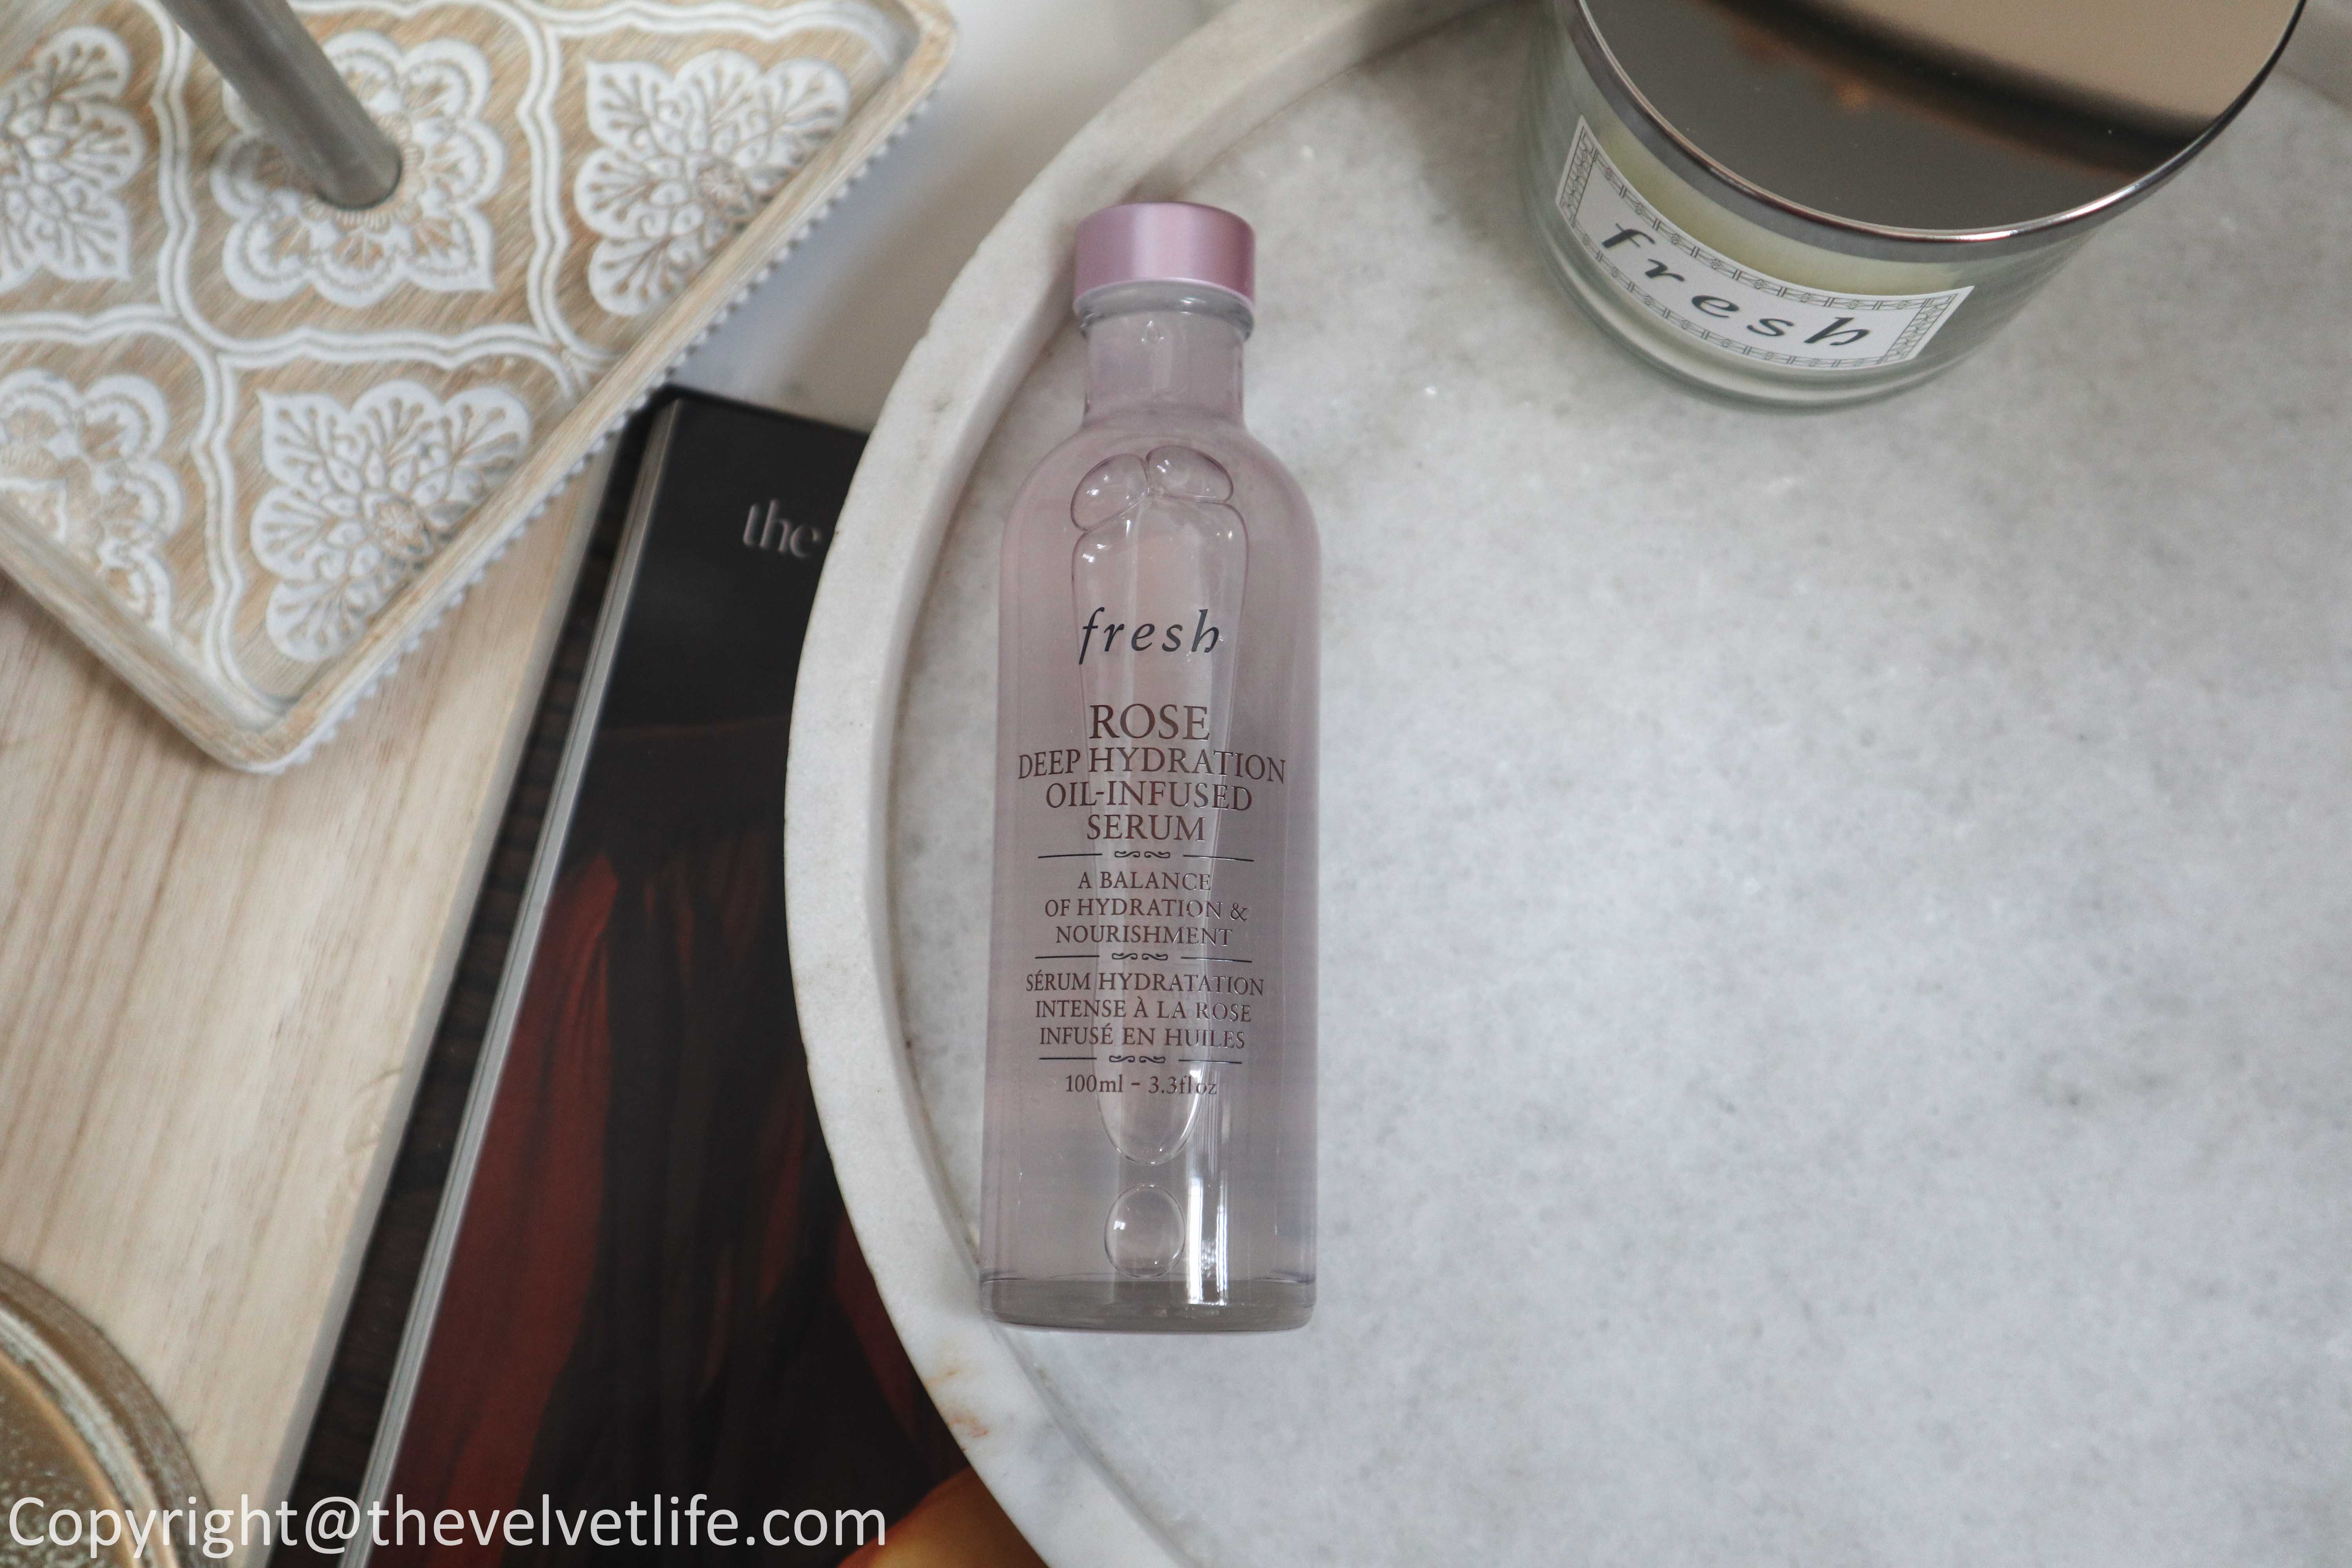 Review of Fresh Black Tea Instant Perfecting Mask, Soy Cleanser, Rose Deep Hydration Oil-Infused Serum, Sugar Strawberry Exfoliating Face Wash, Brown Sugar Body Polish Exfoliator, Black Tea Antioxidant Body Cream